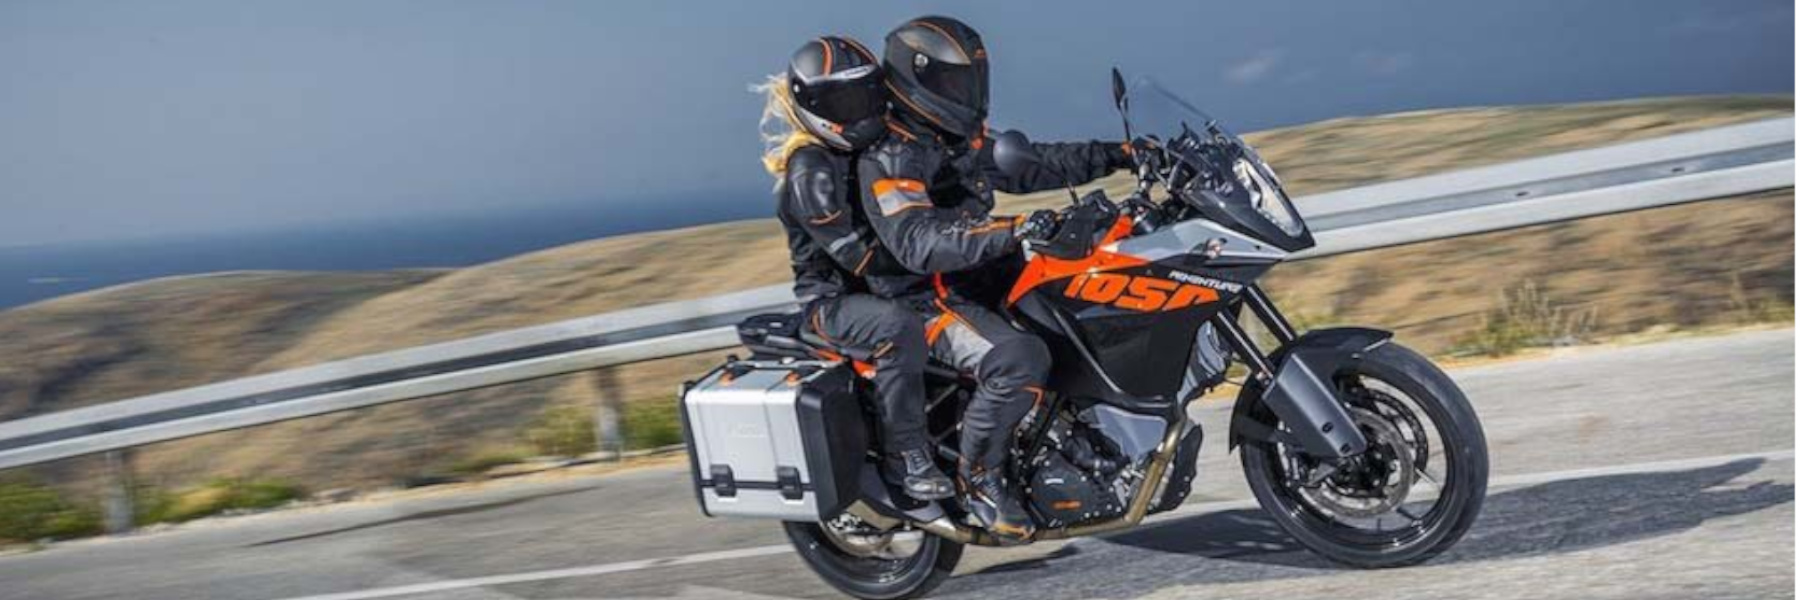 Motorcycle rental  CAGLIARI PORT Sardinia